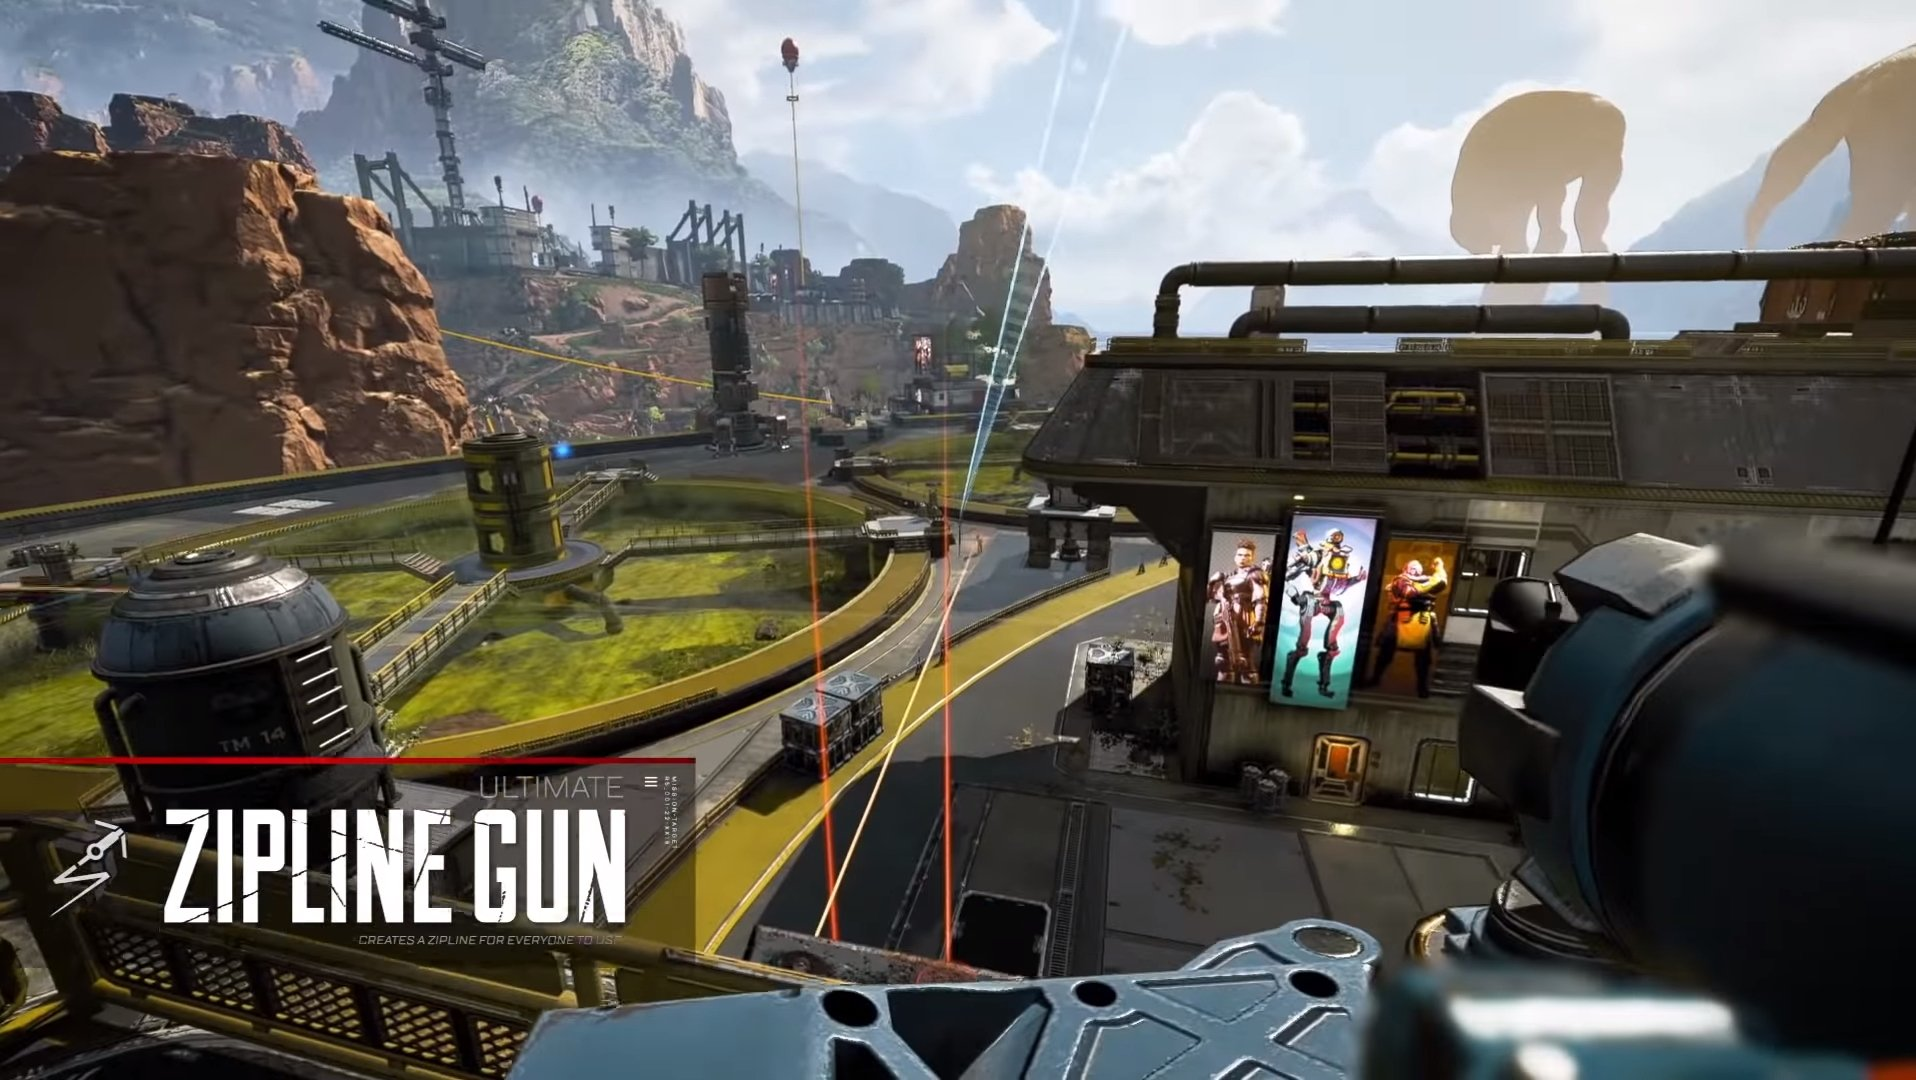 Pathfinder tips and tricks in Apex Legends